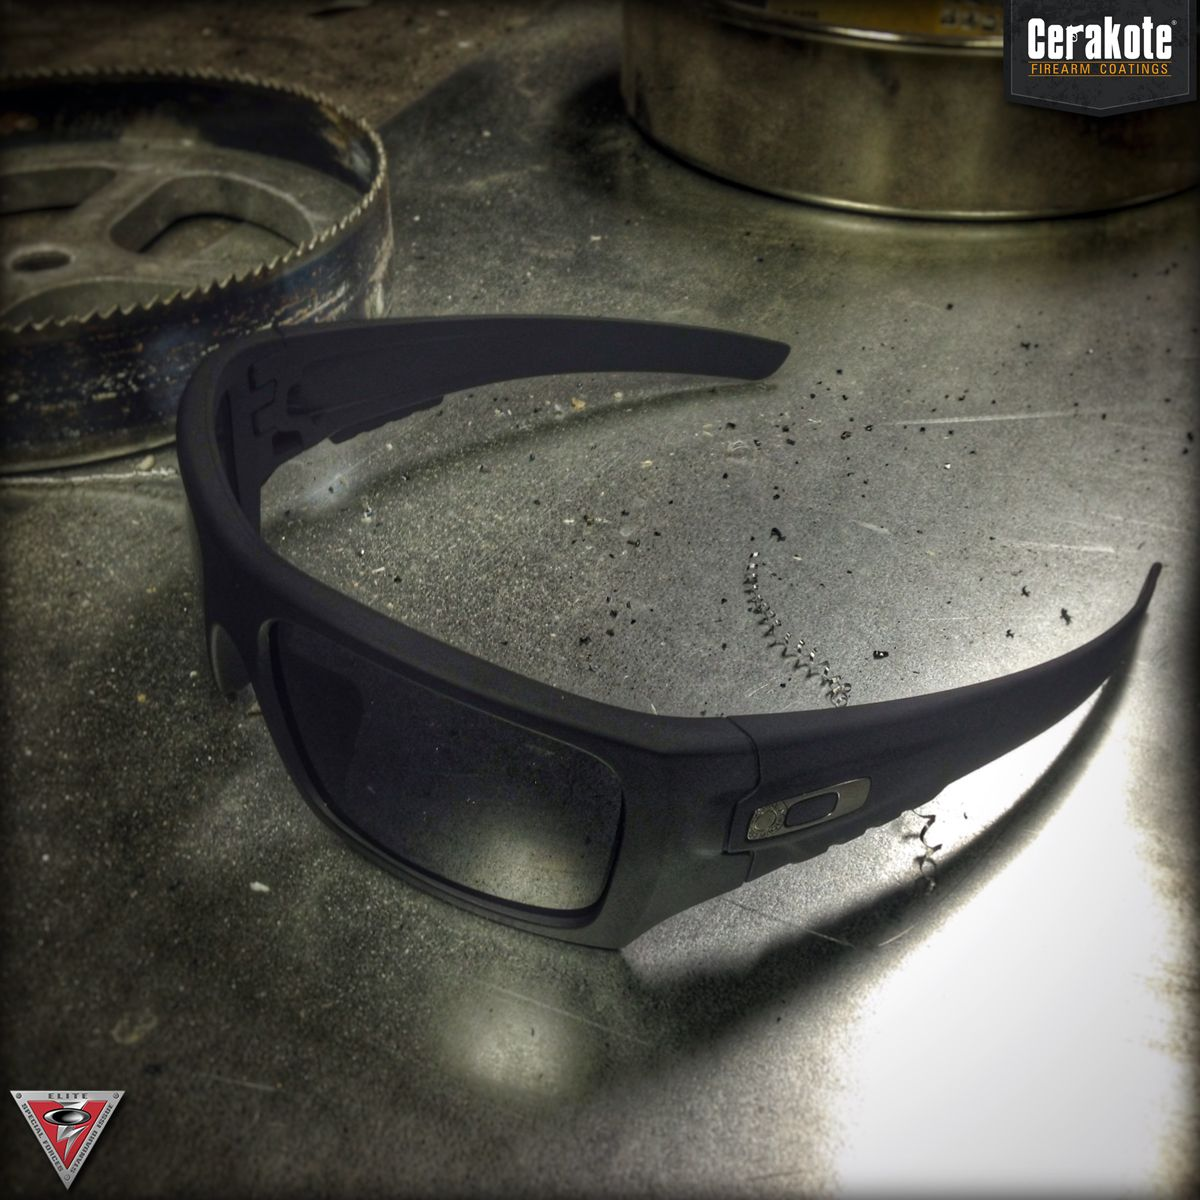 Oakley Standard Issue Det-Cord Sunglasses Featuring Cerakote Graphite Black Coating.